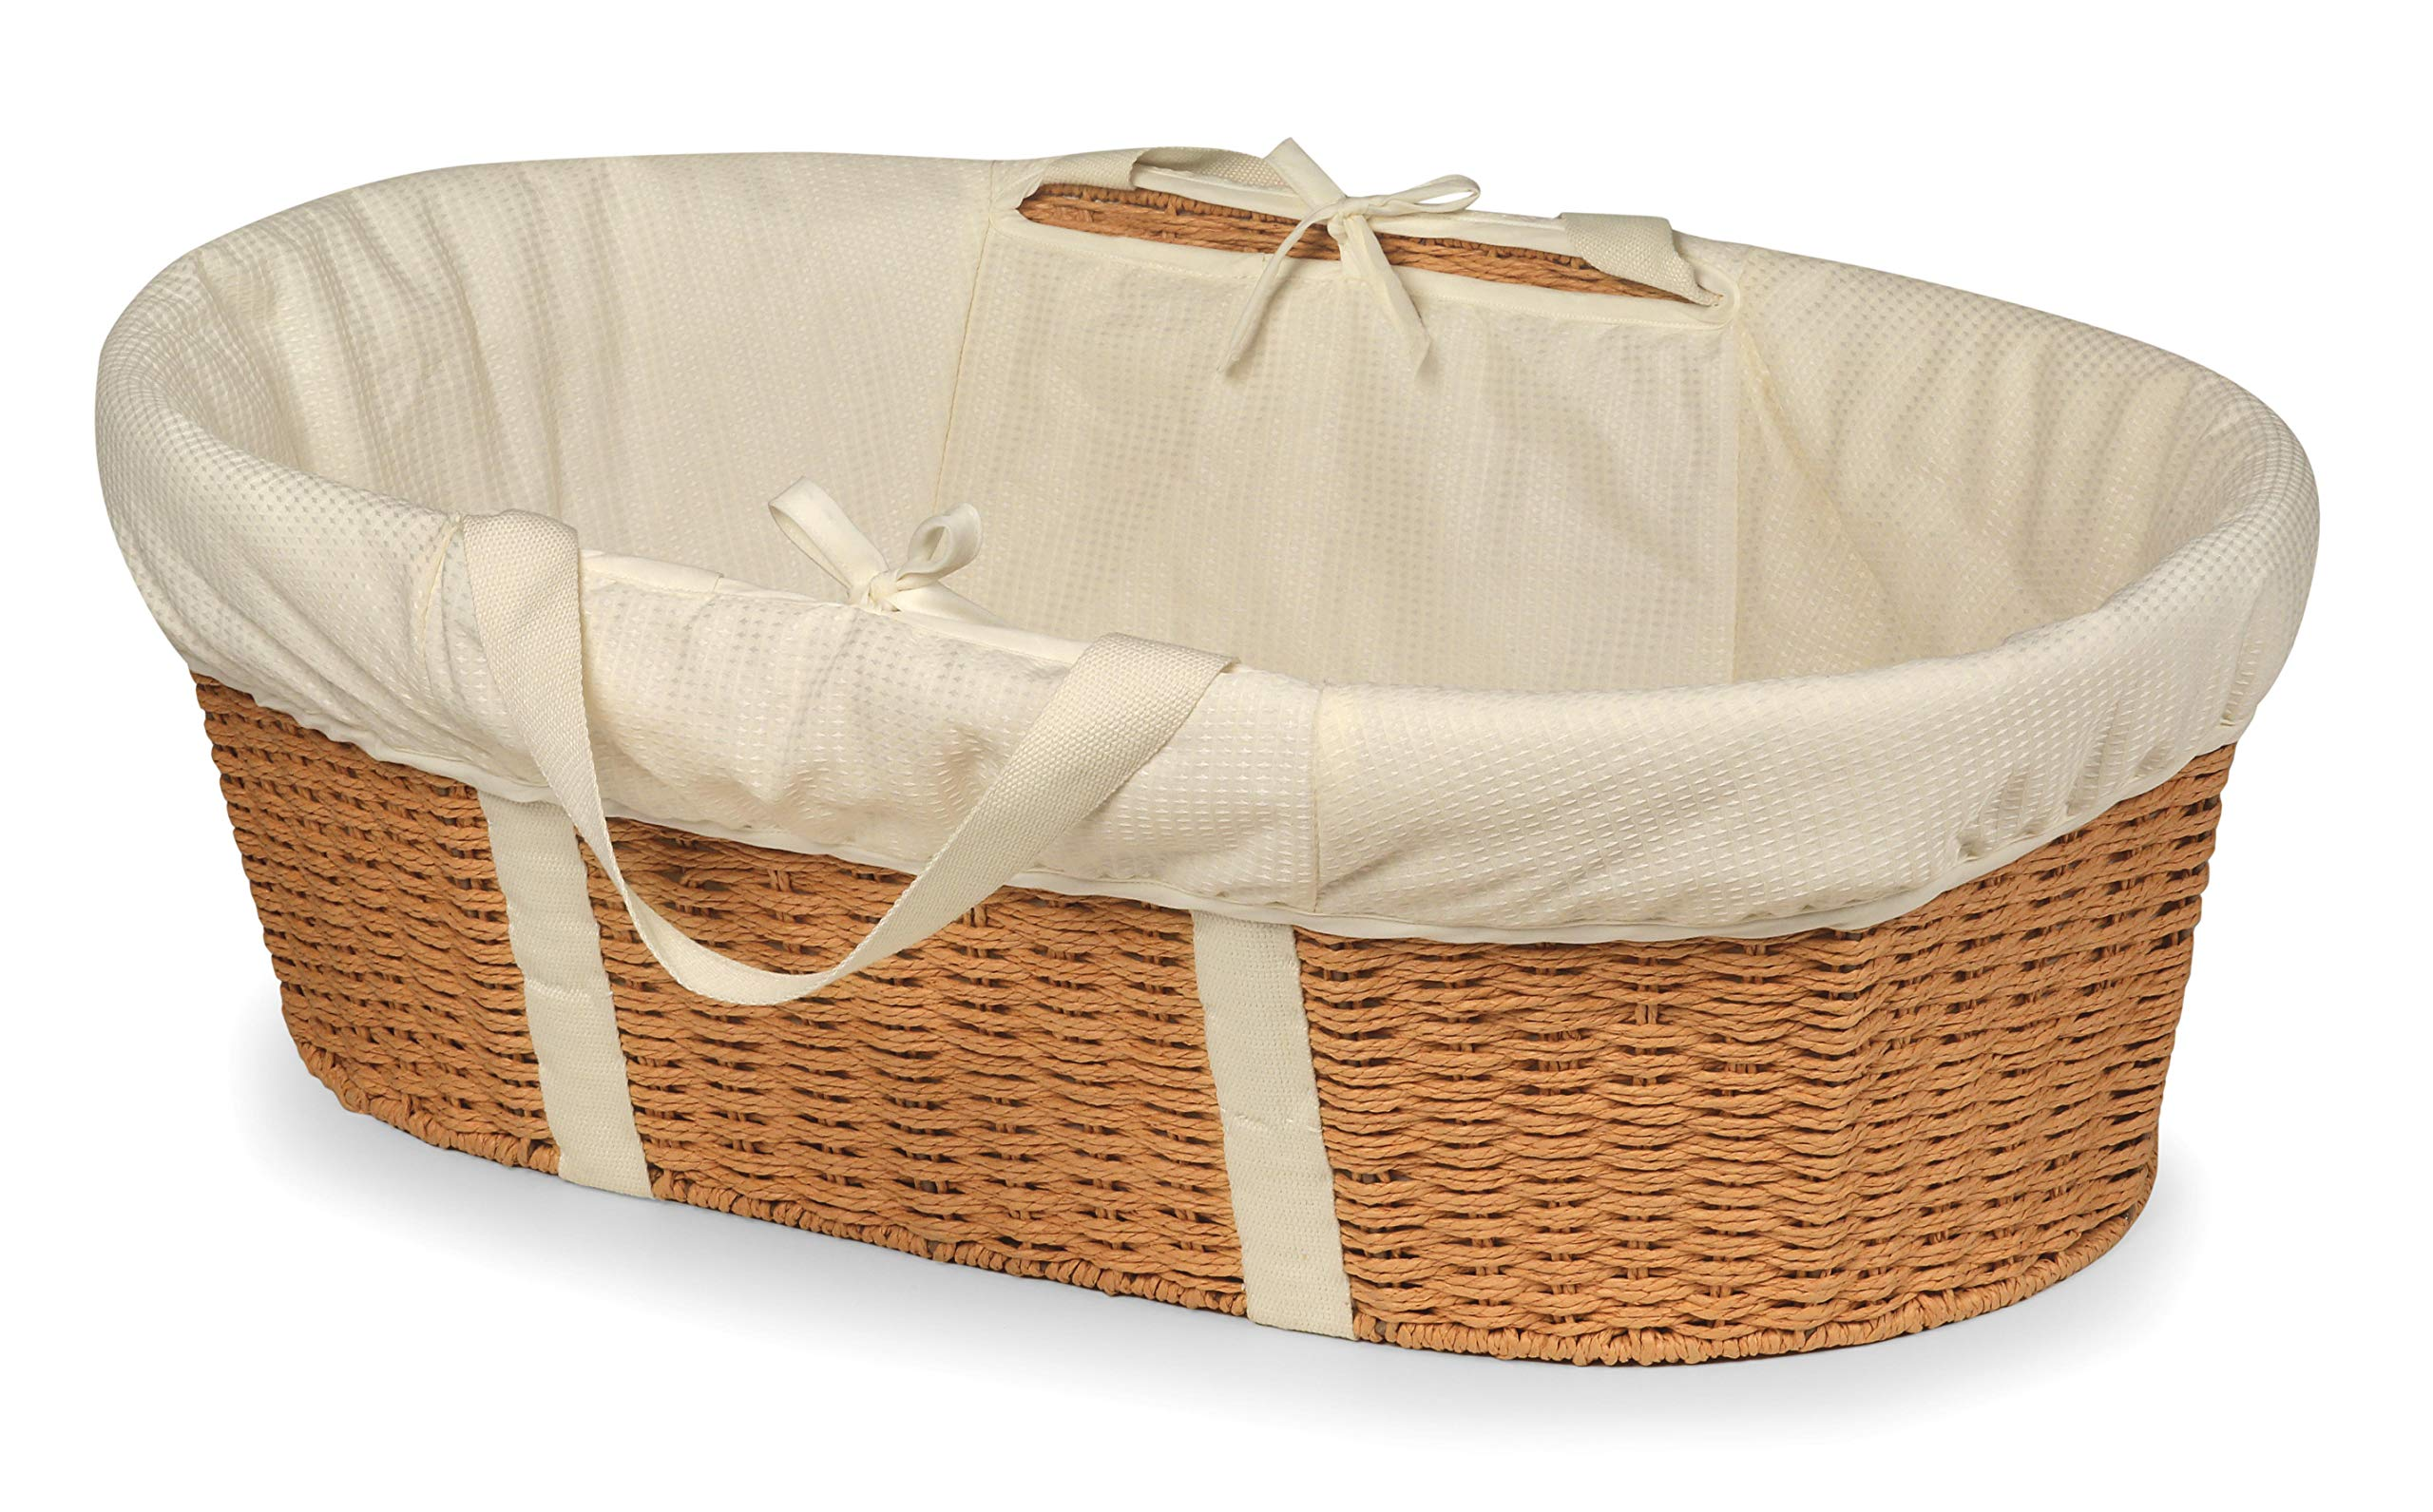 Badger Basket Wicker-Look Woven Baby Moses Basket with Bedding, Sheet, and Pad, Natural/Ecru by Badger Basket